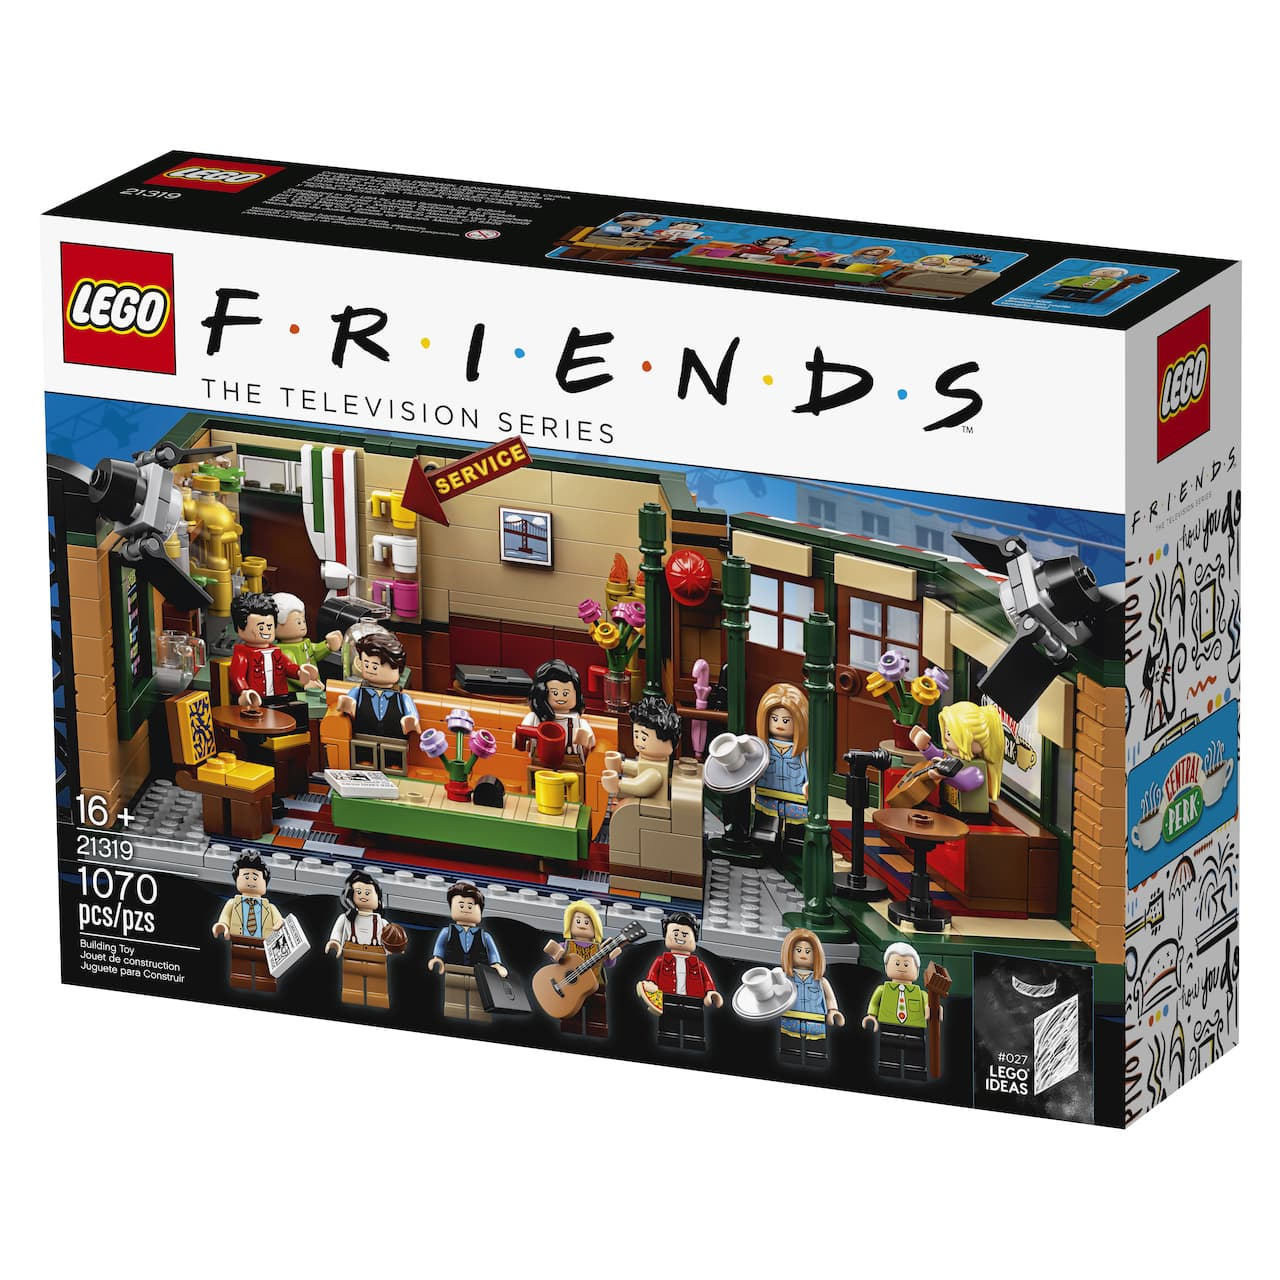 LEGO is LEGO-fying the Friends cast and set in new 25th anniversary set